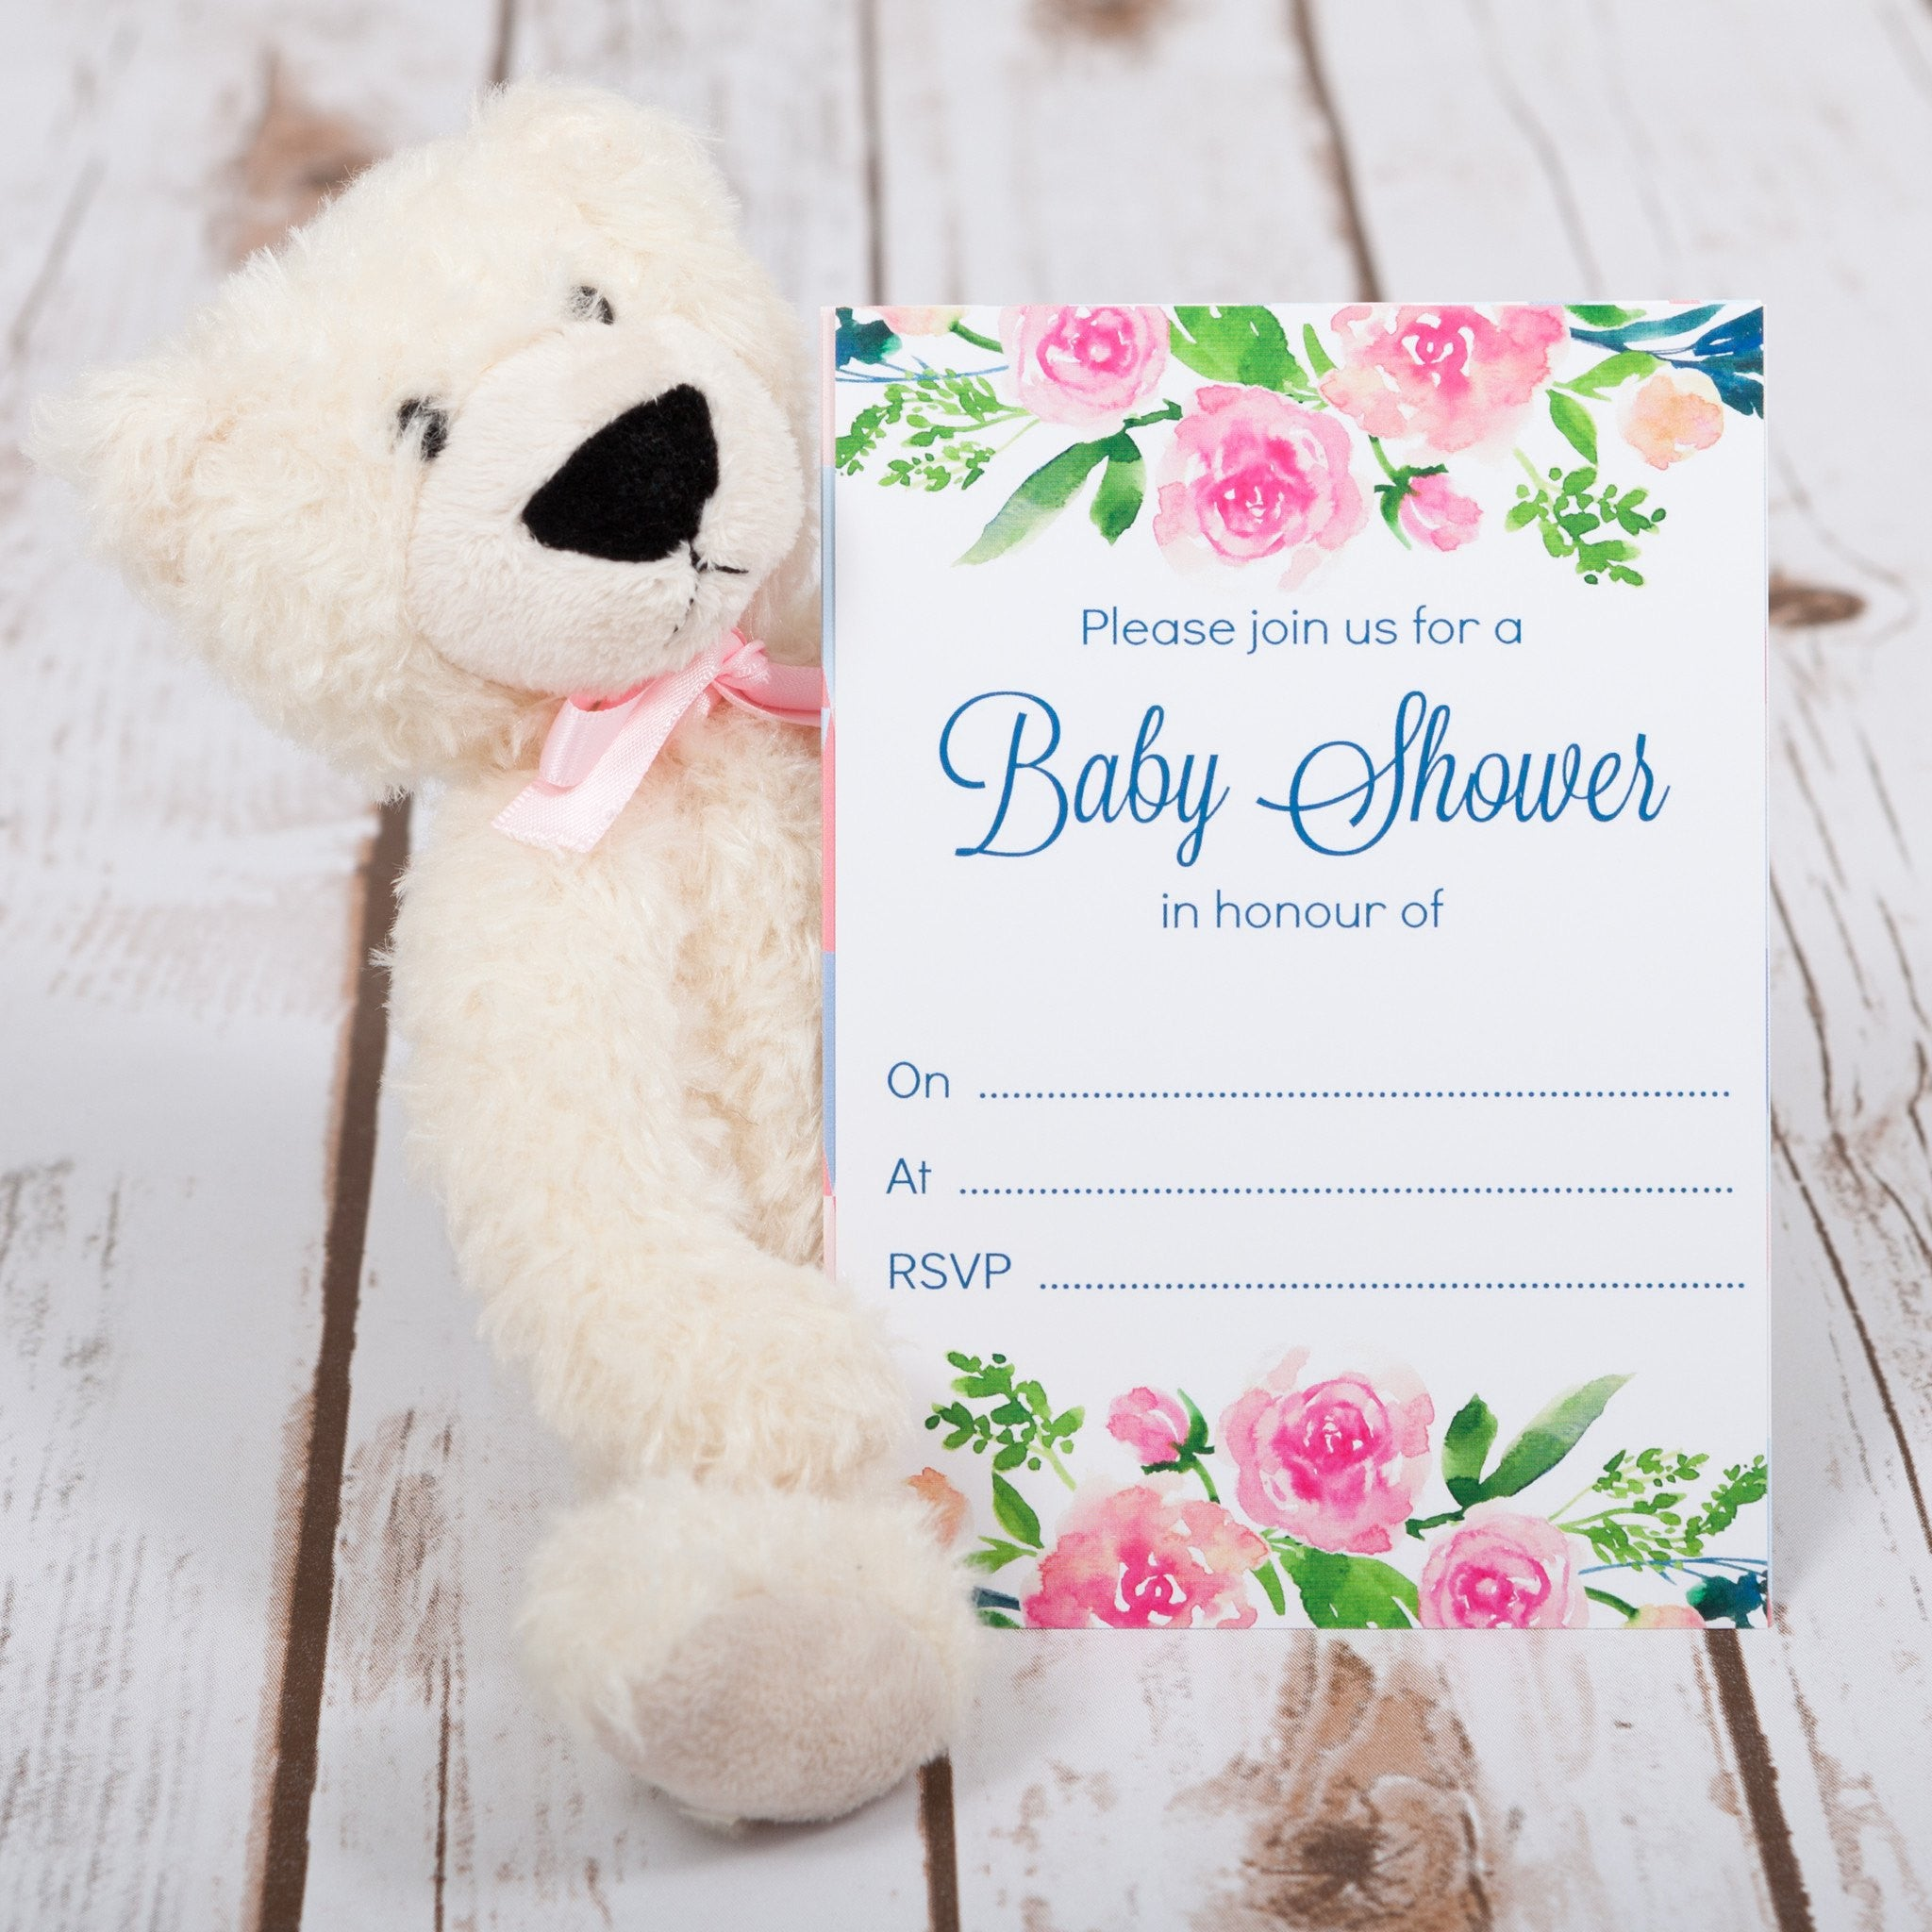 Baby Shower Invitations with Pink Floral Design – Betty Bramble